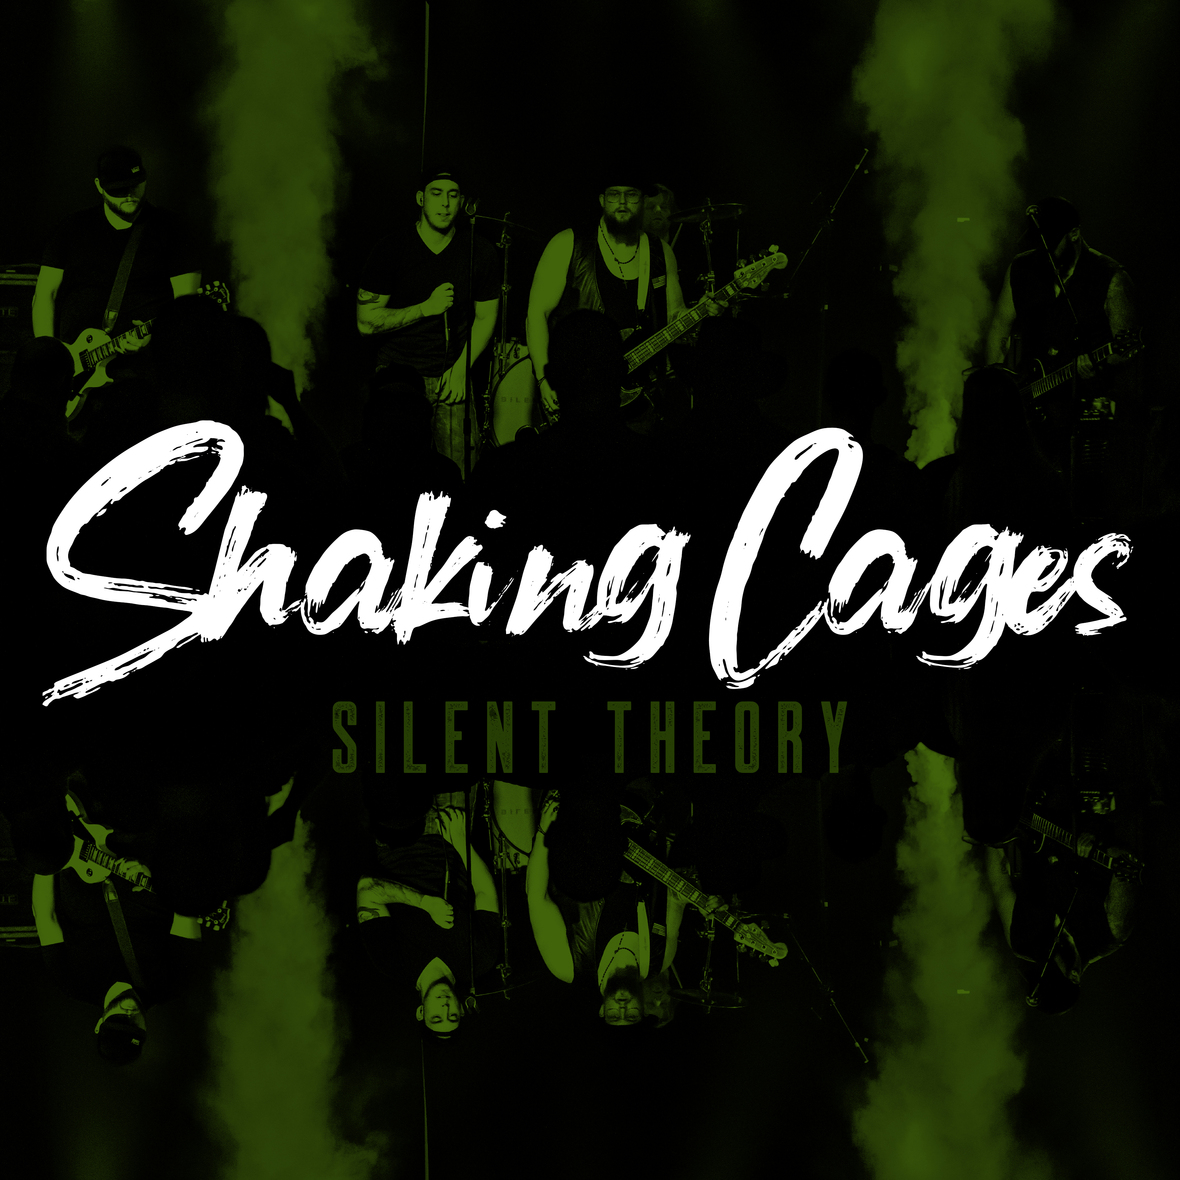 Shaking Cages Single Cover